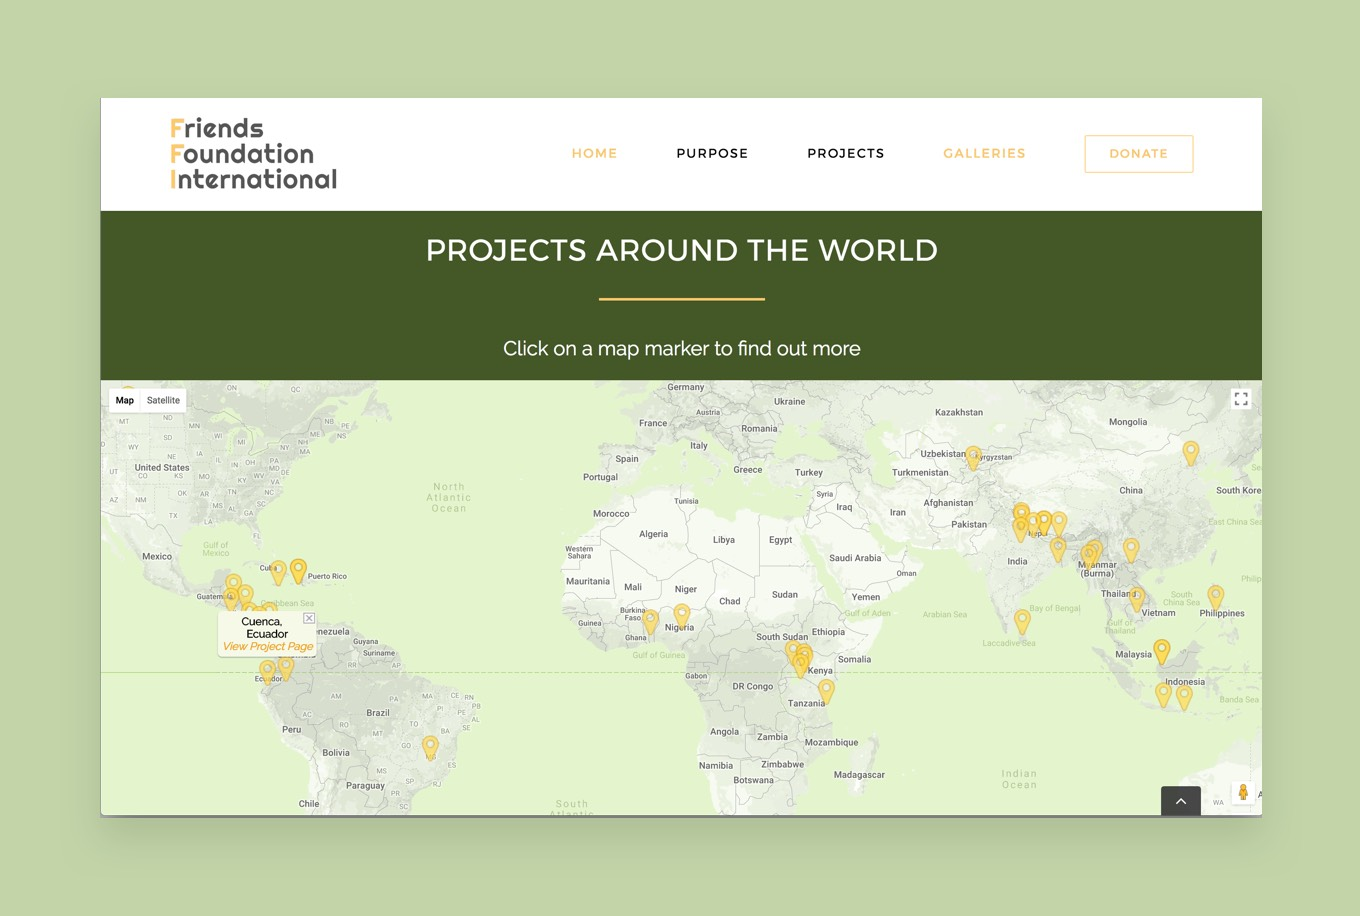 Screenshot of the map section of the Friends Fondation International website homepage